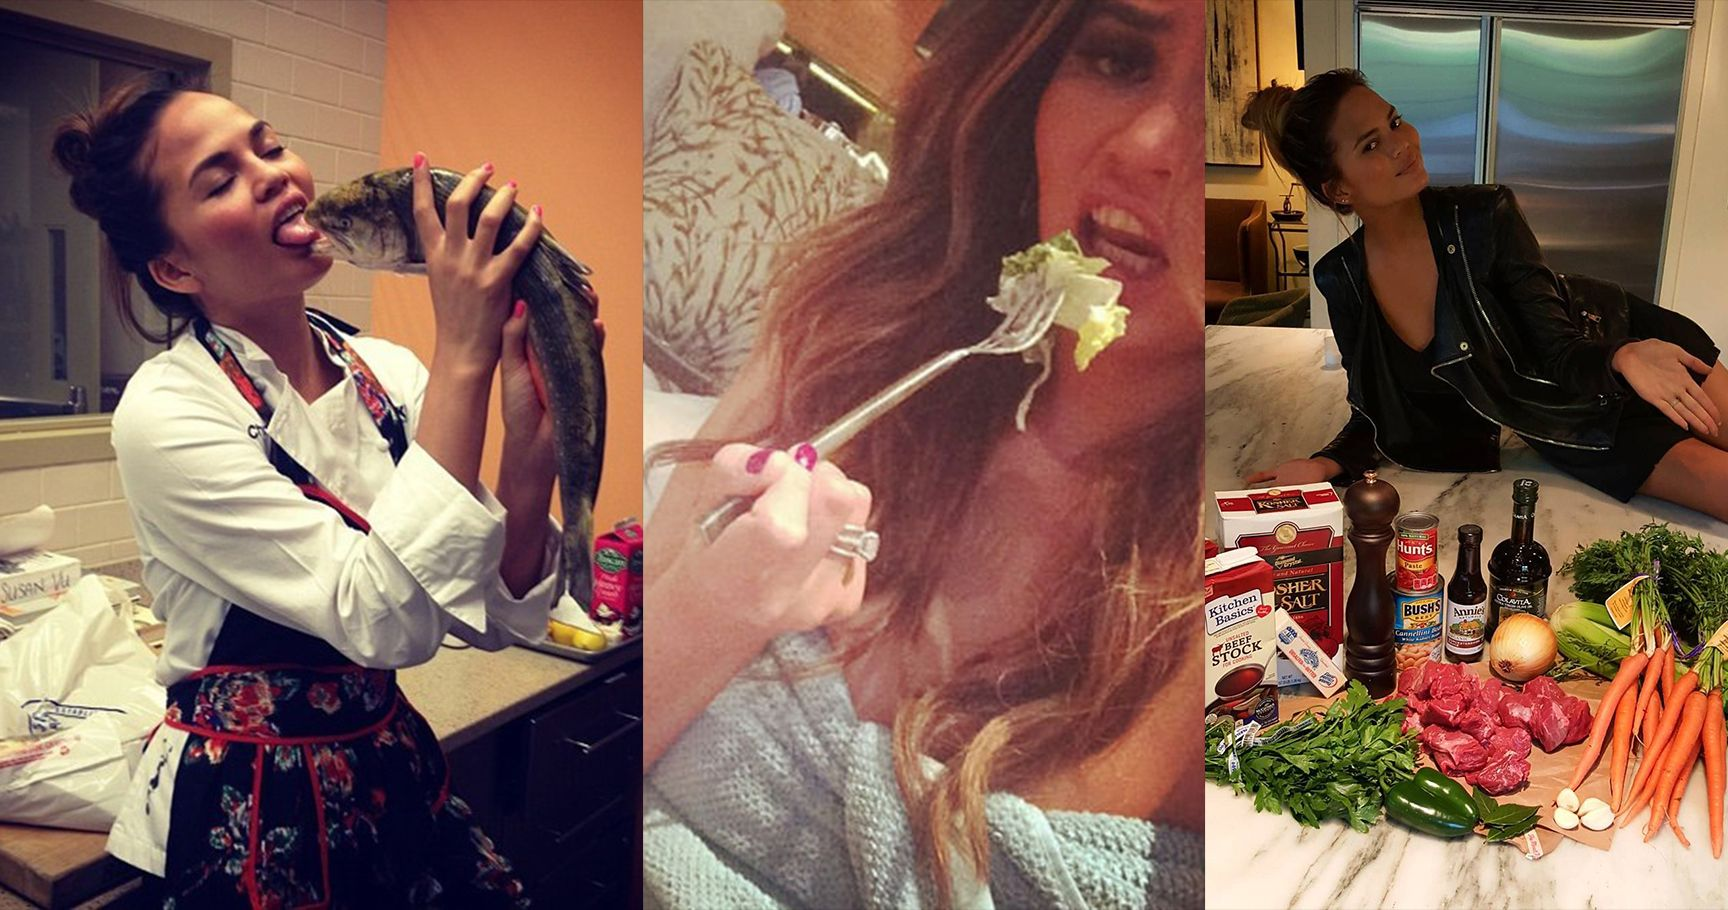 15 Times Chrissy Teigen Got Photobombed By Food